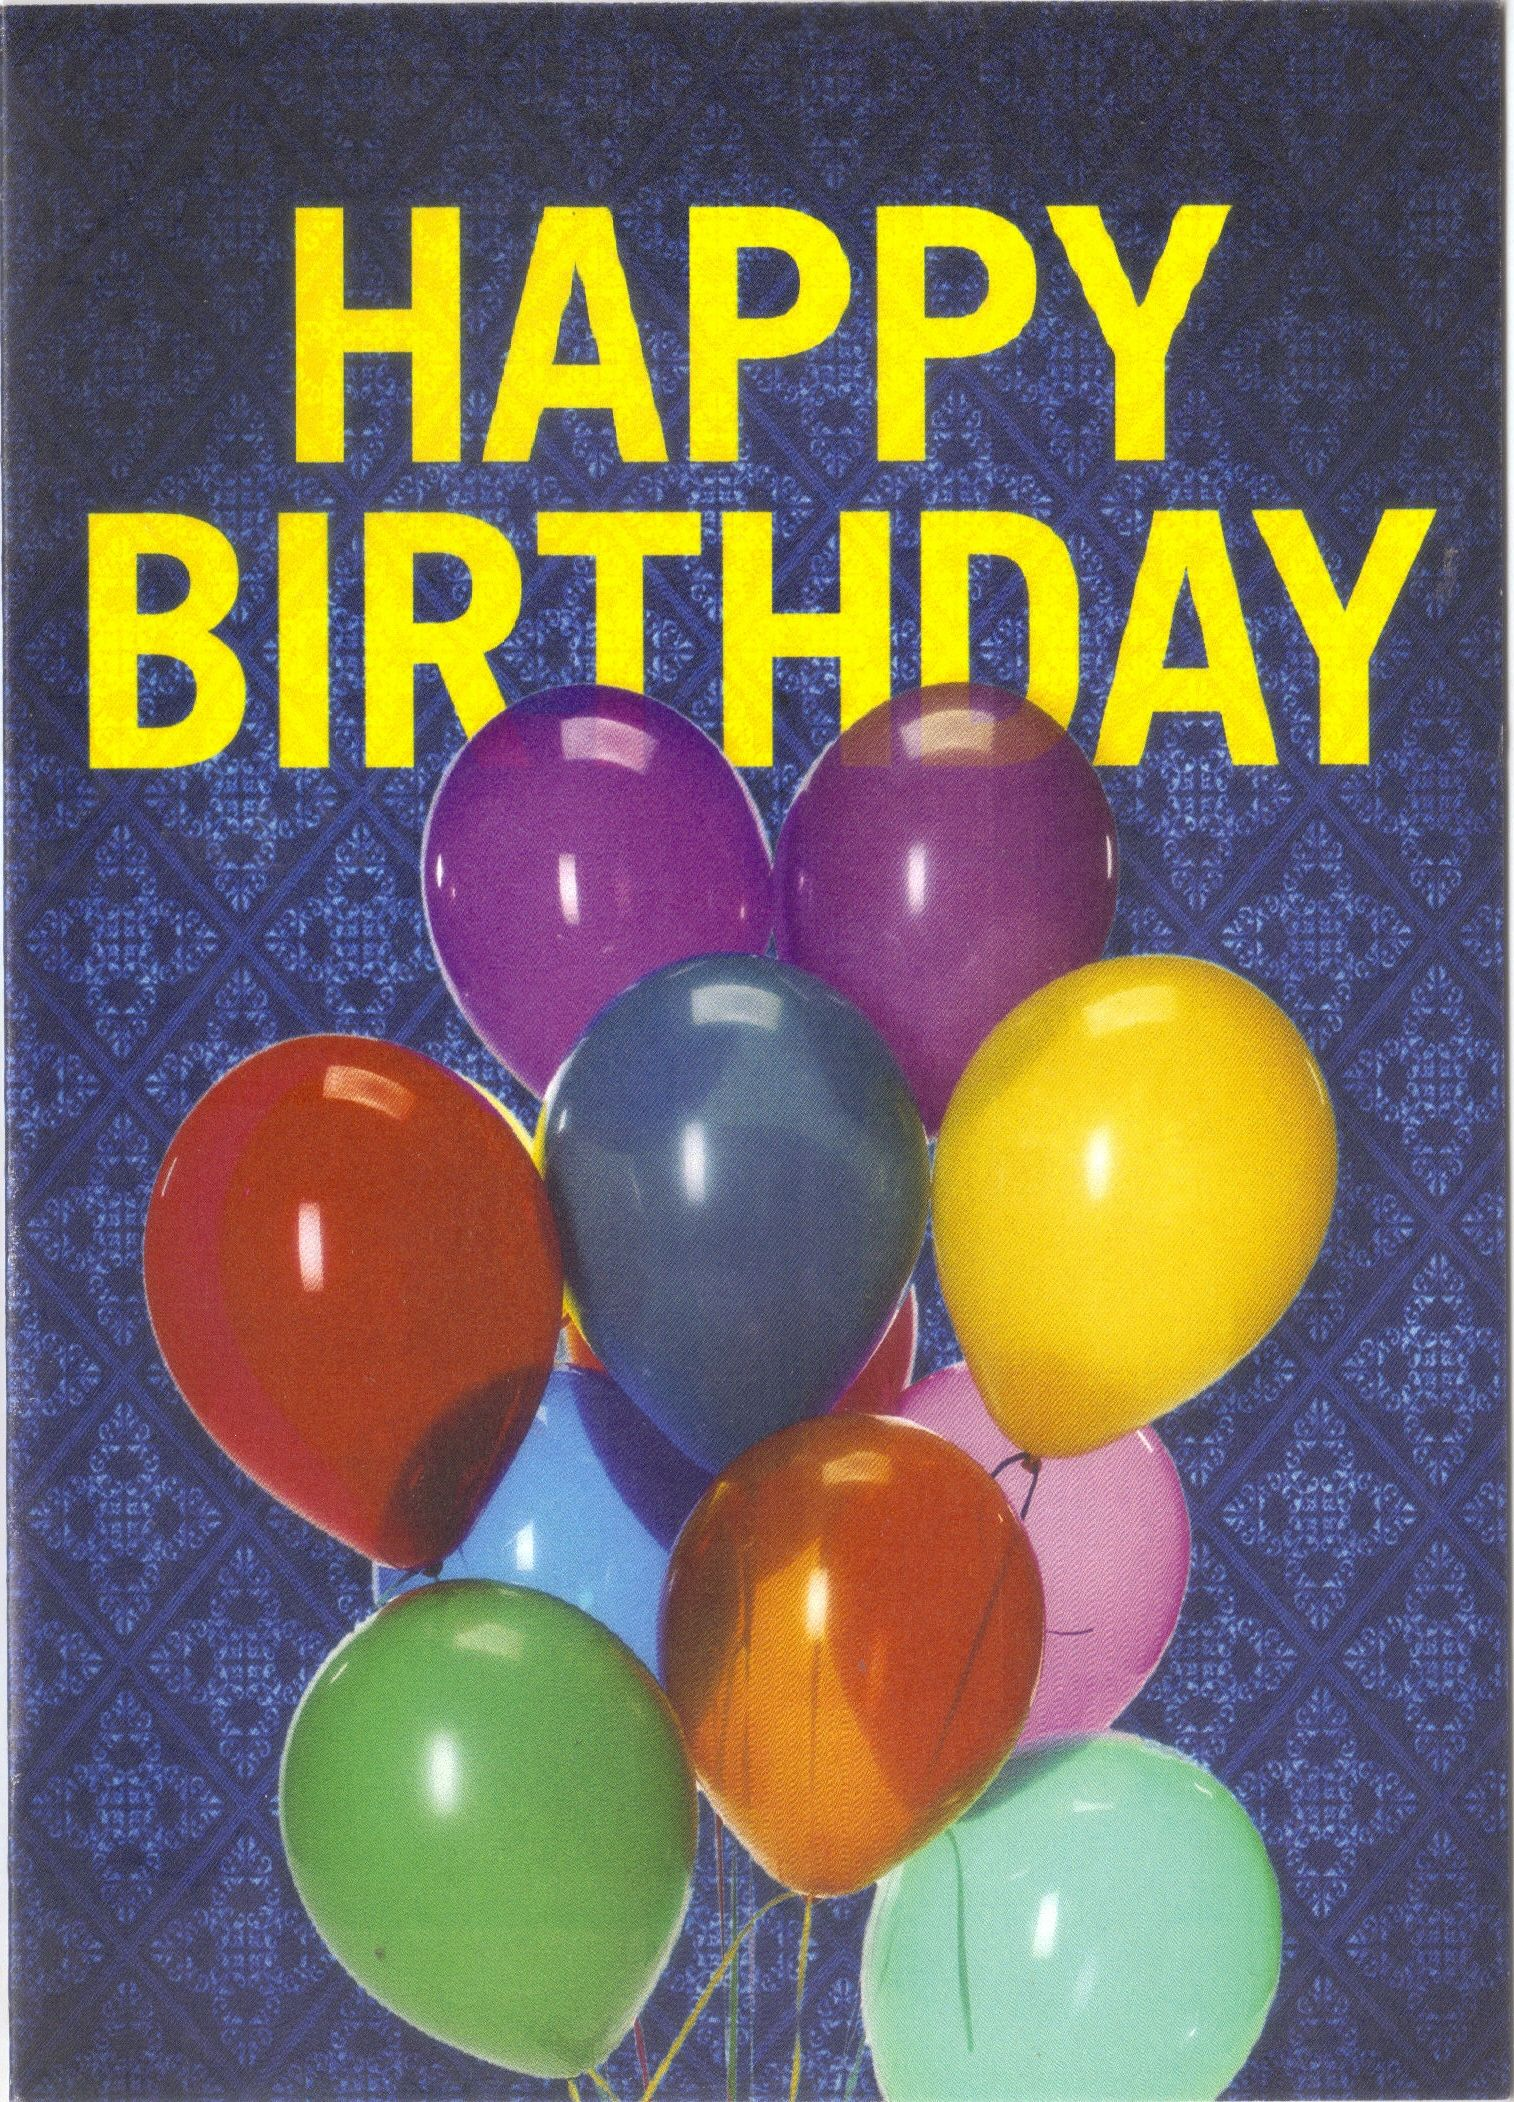 Happy birthday card with balloons cute from capitolone financial